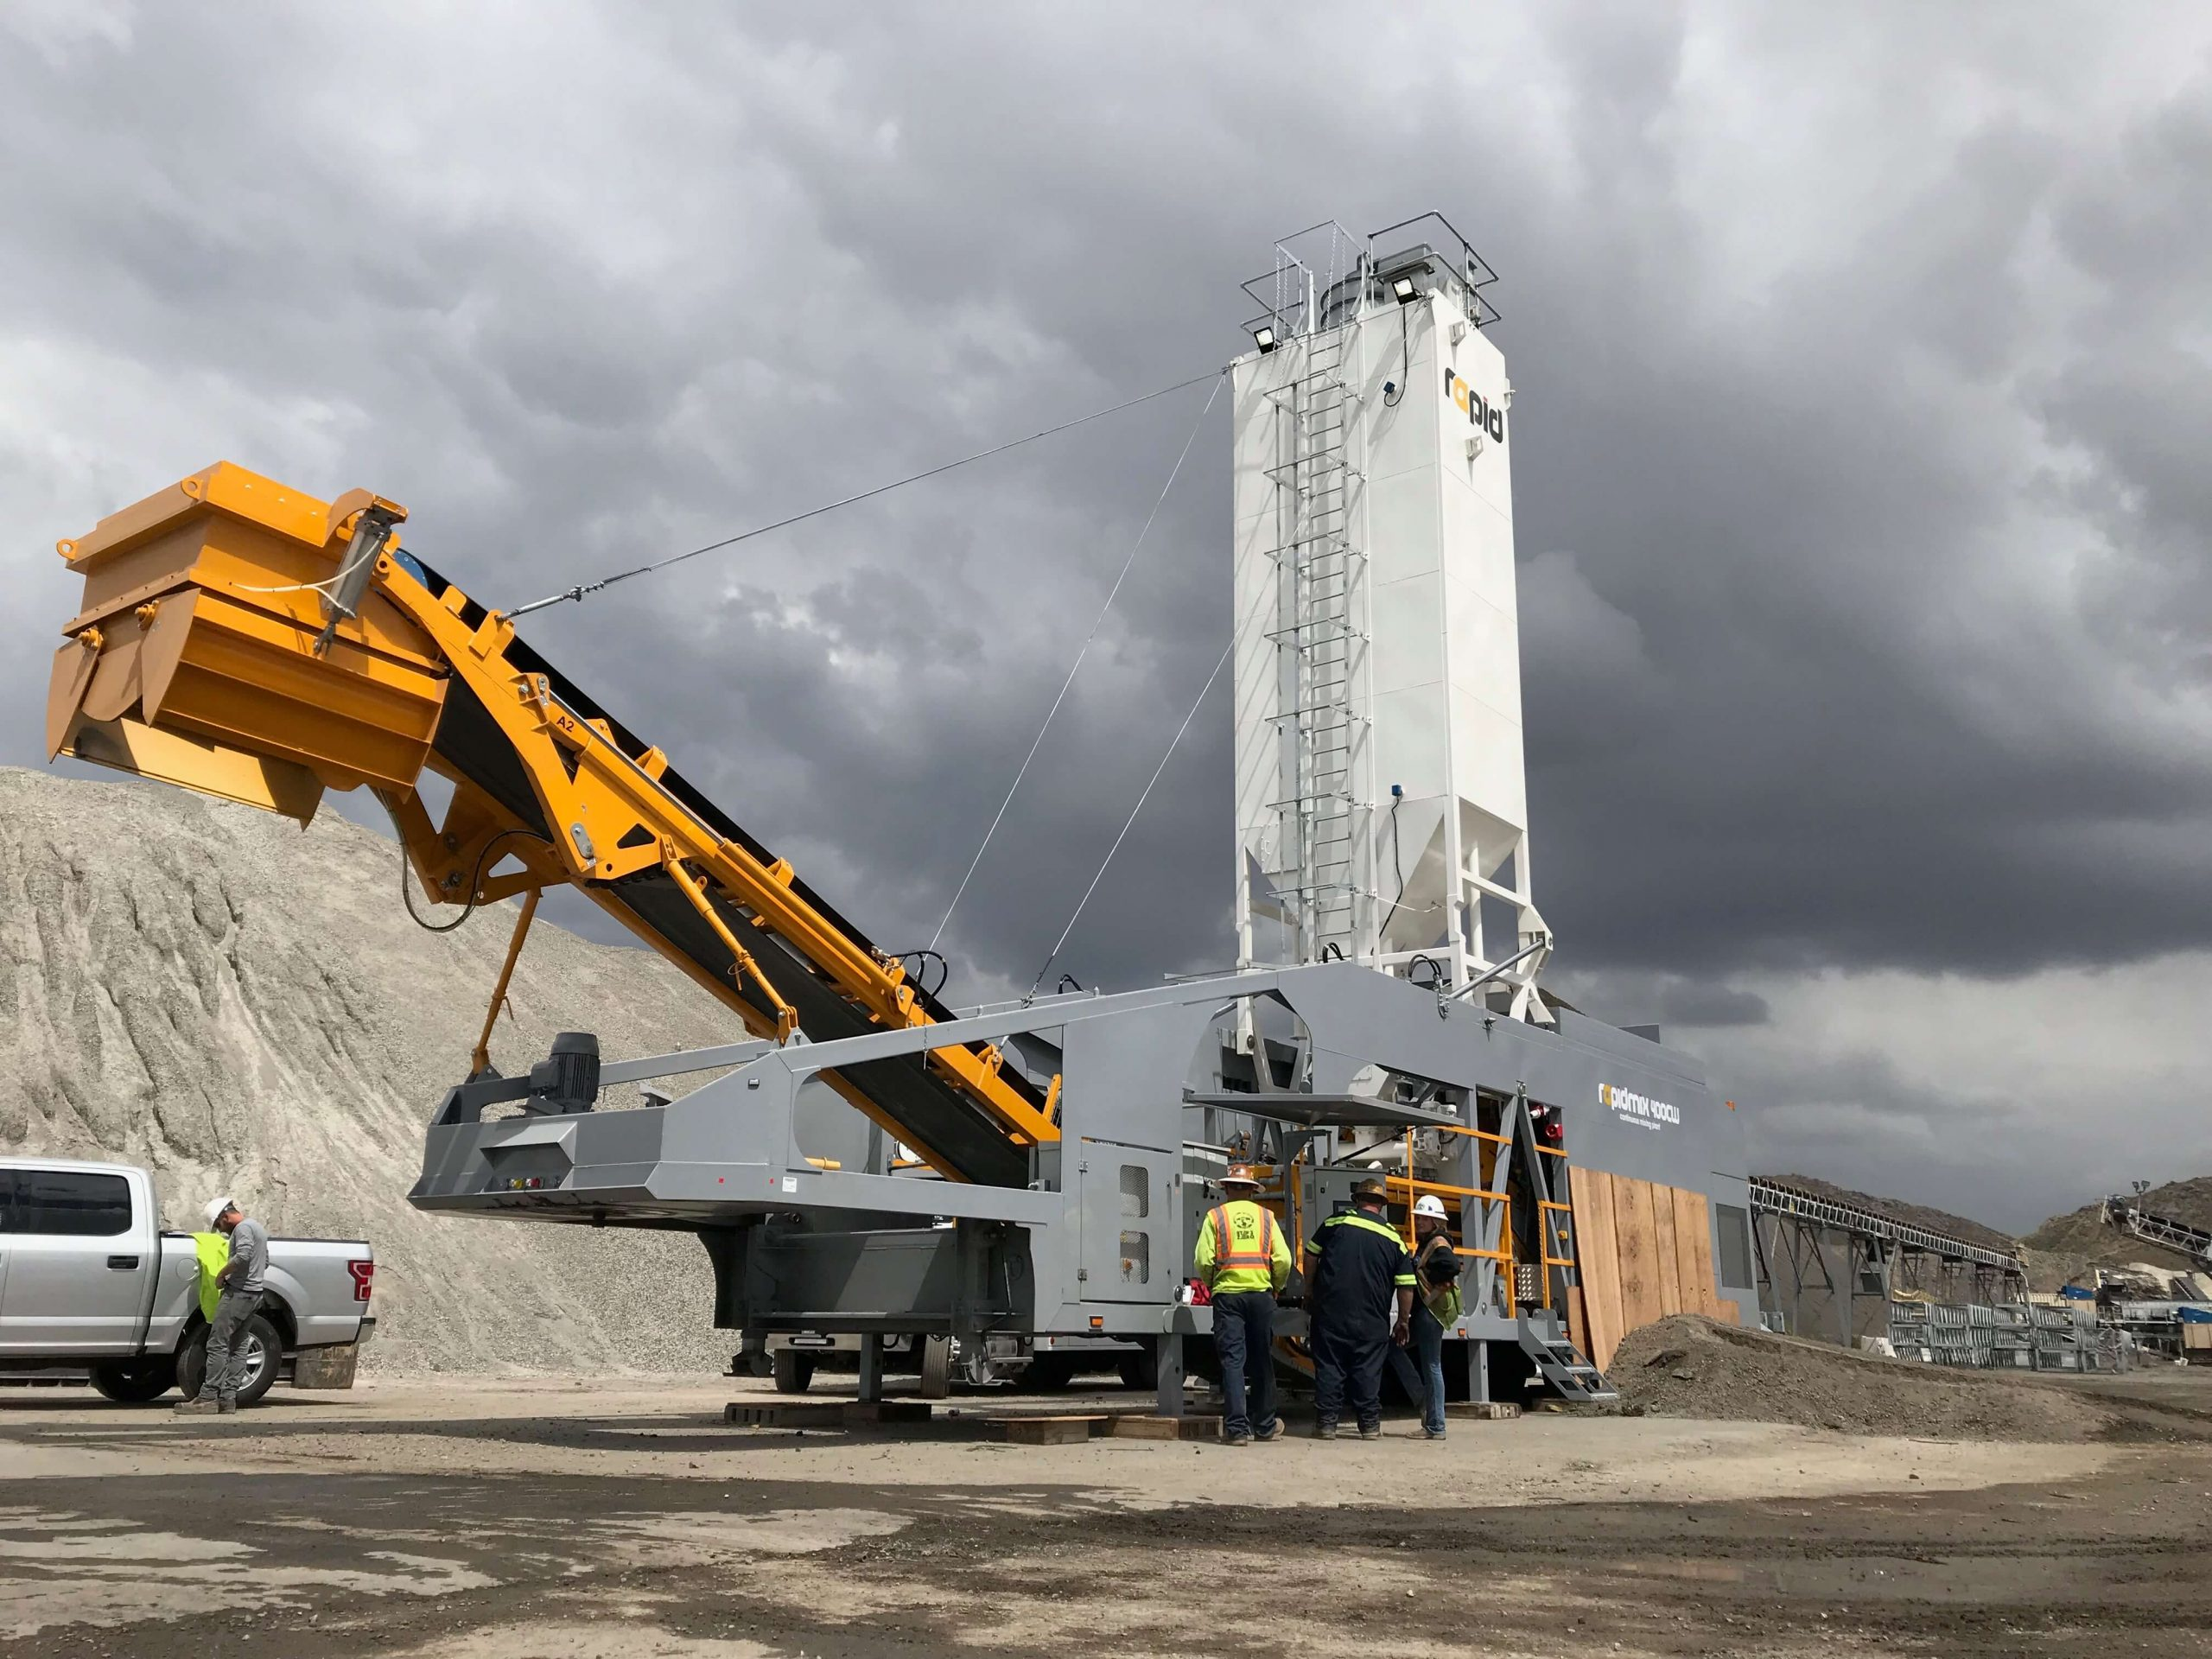 New Rapidmix 400CW mobile continuous mixing plant/pugmill for Pavement Recycling Systems for Port of Long Beach Middle Harbor Redevelopment Project.